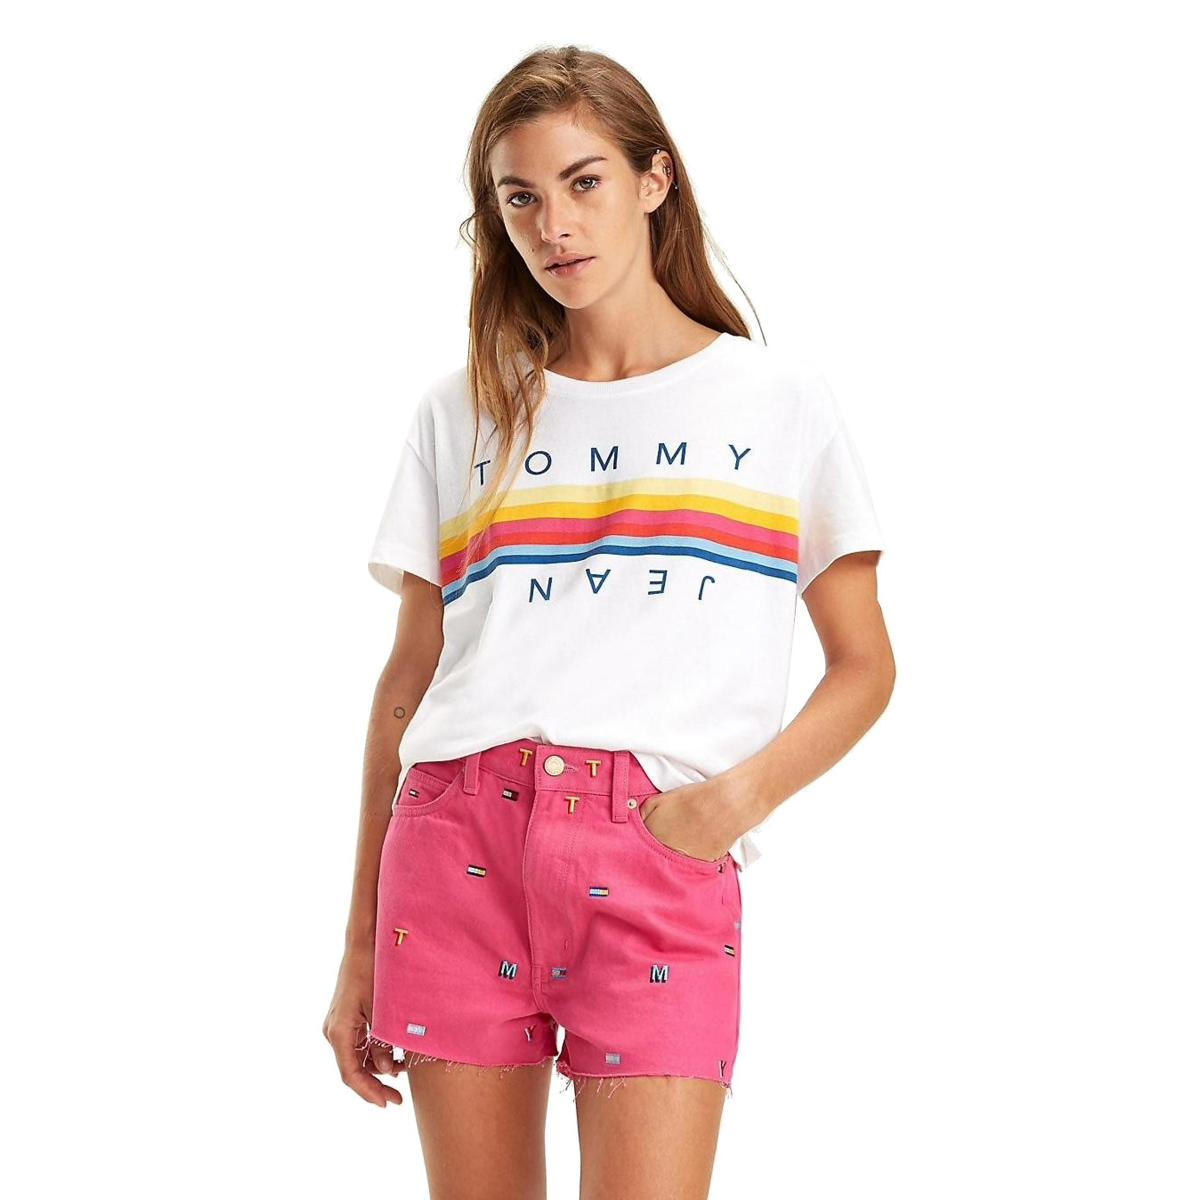 T-shirt Tommy Jeans crop a righe multicolori da donna rif. DW0DW06501